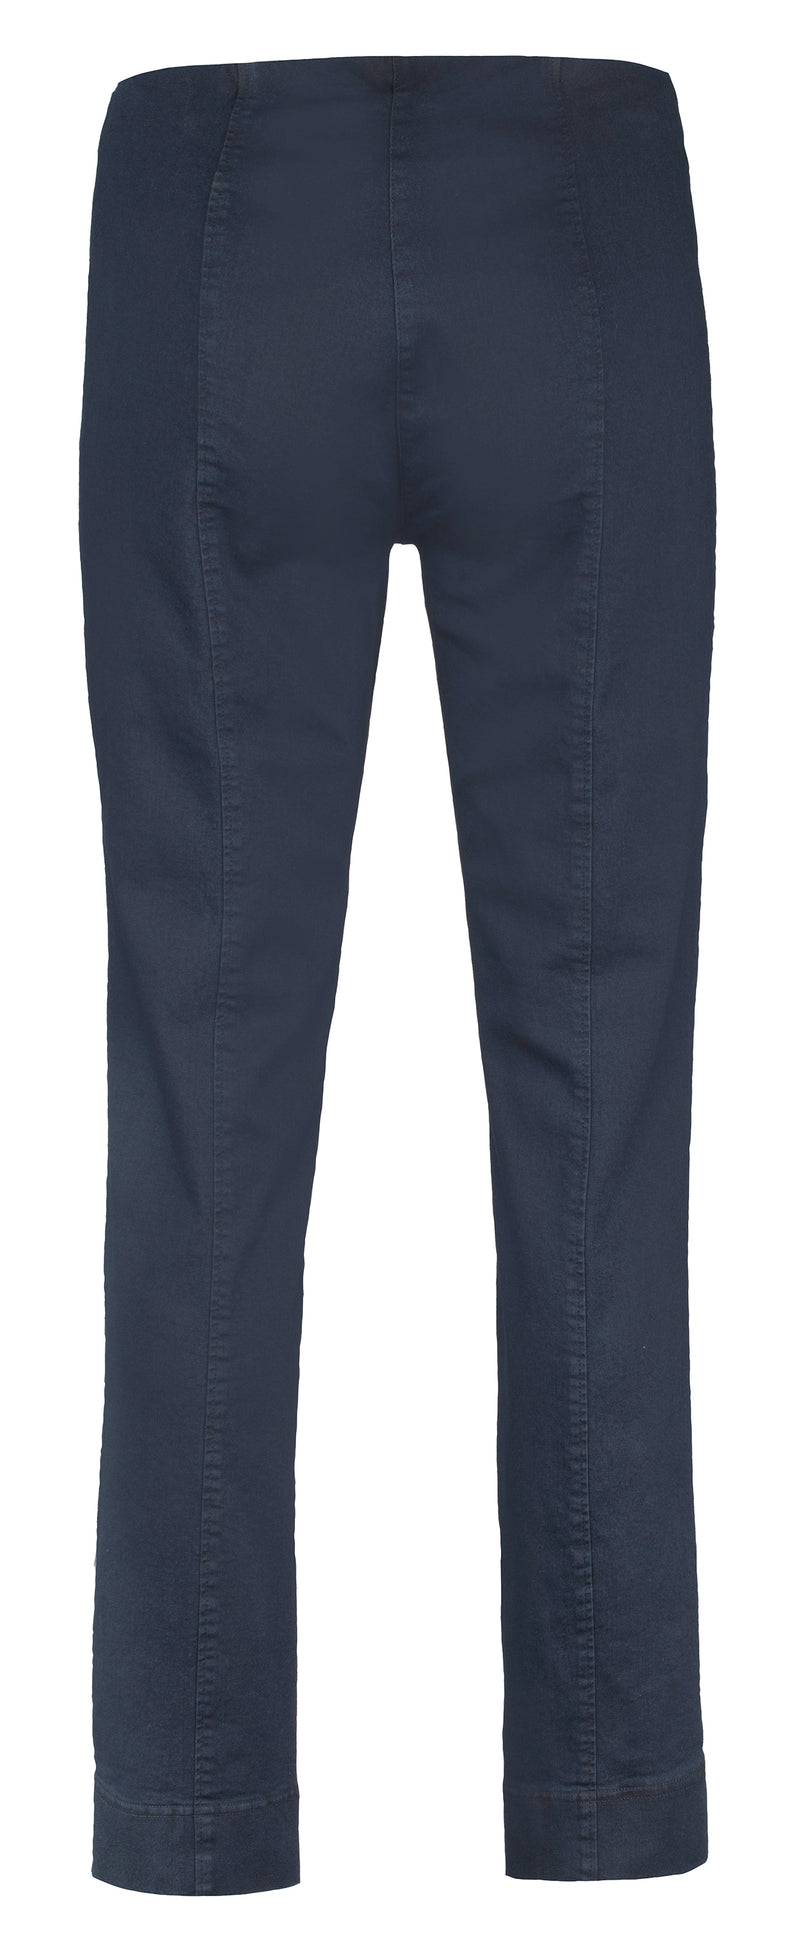 Navy Robell Marie Stretch Denim Jean